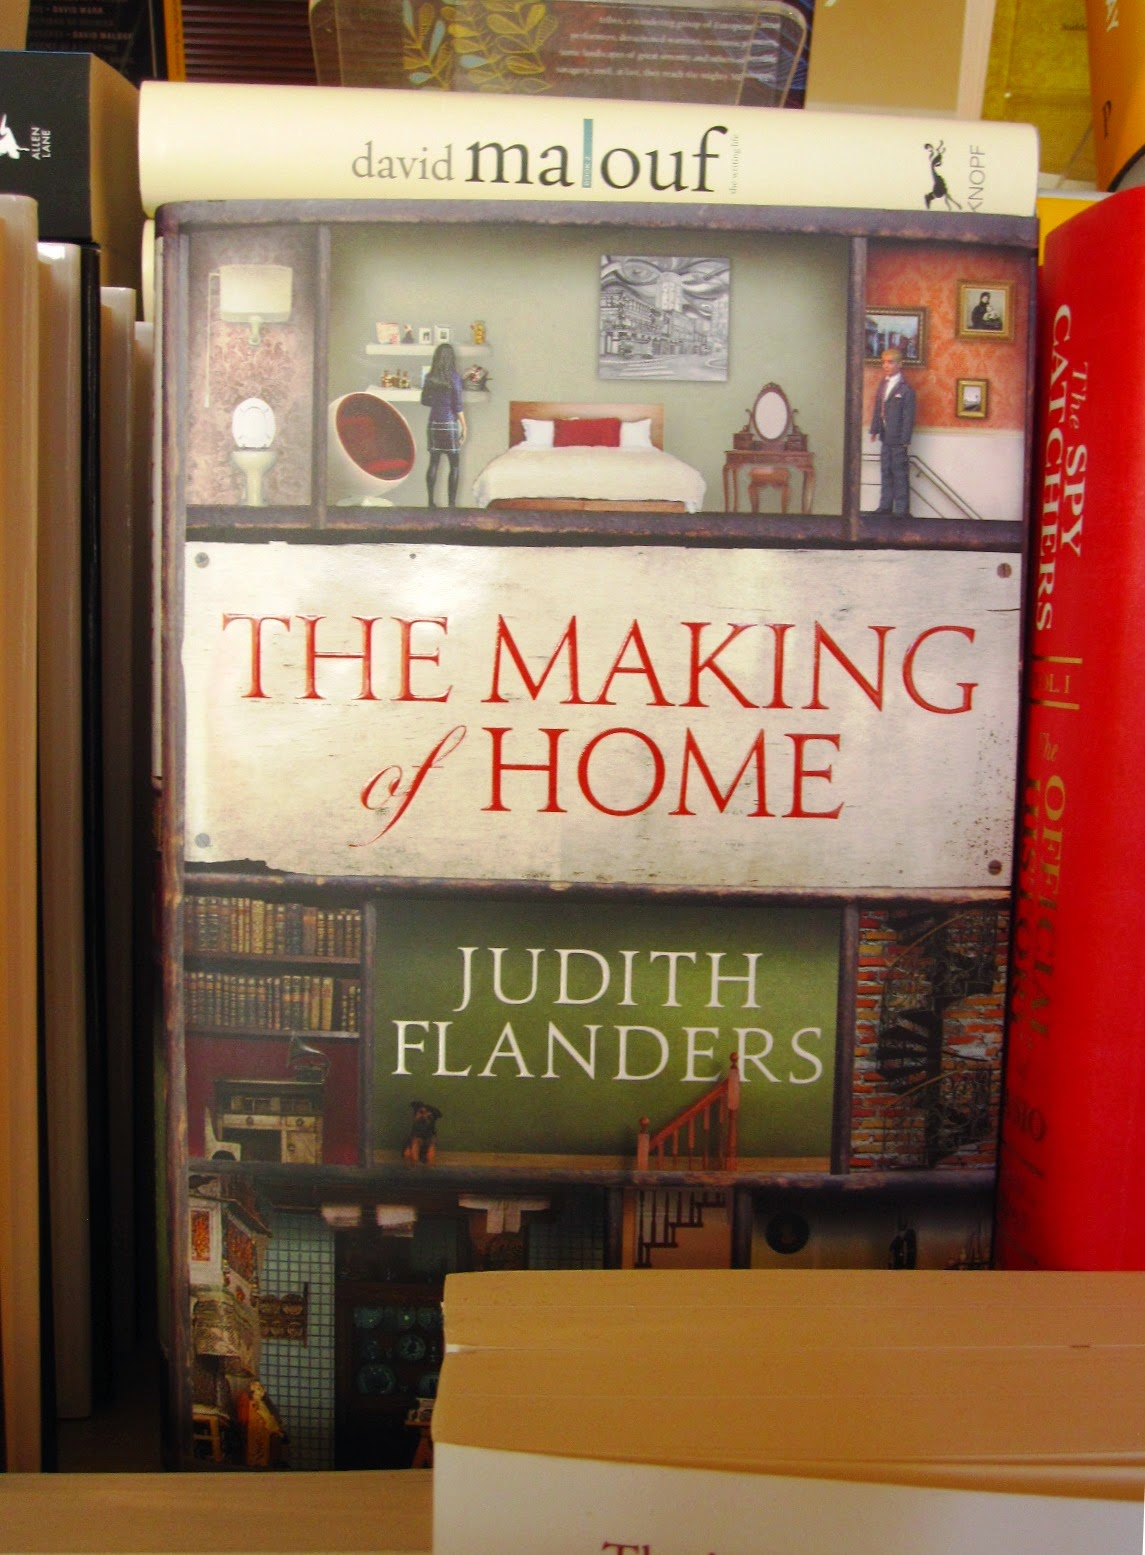 Copy of the book 'The Making of Home' on display in a book shop.